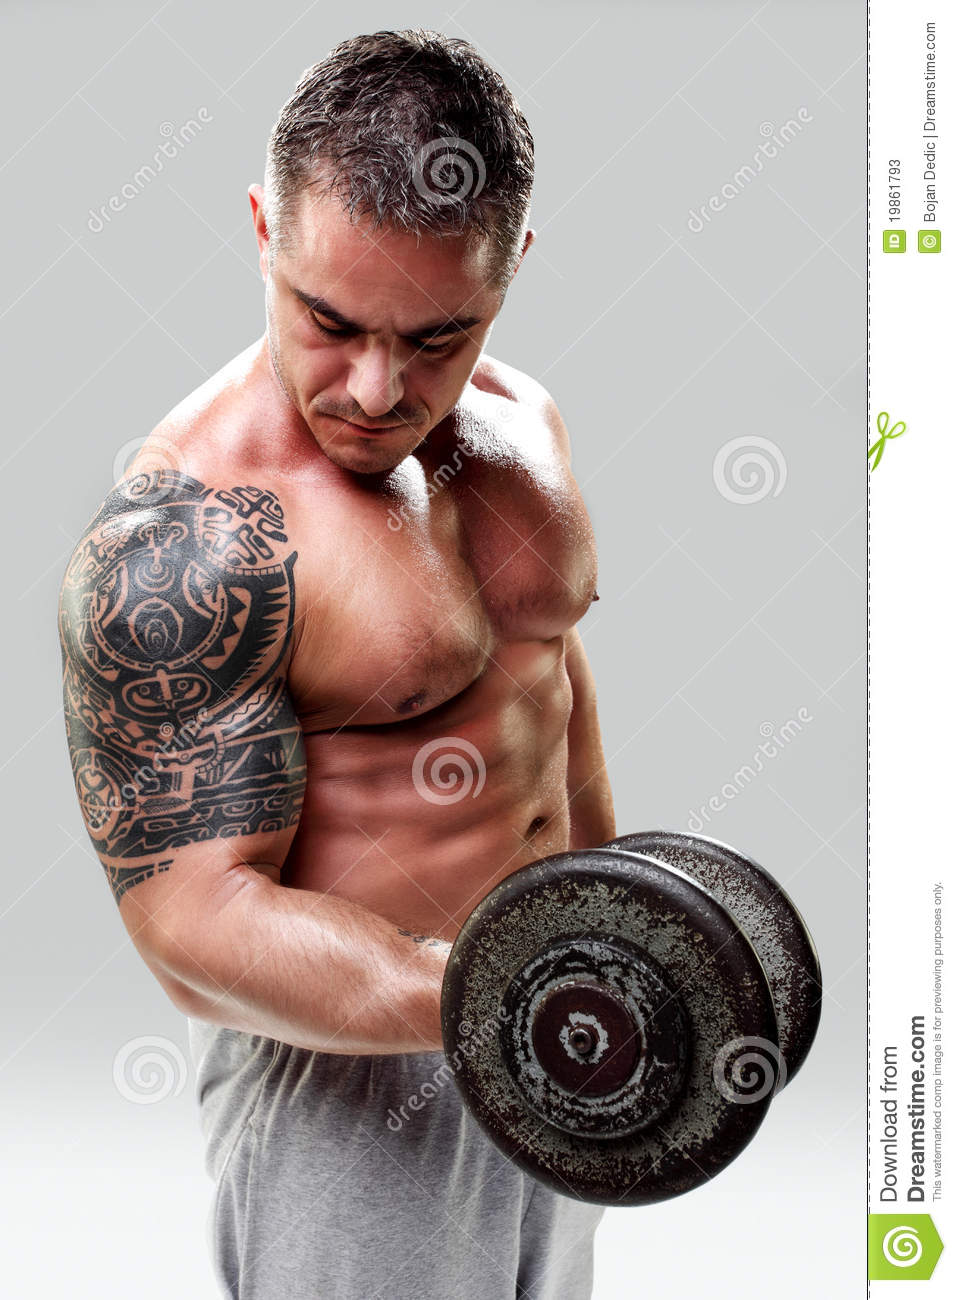 Bodybuilders with Tattoos